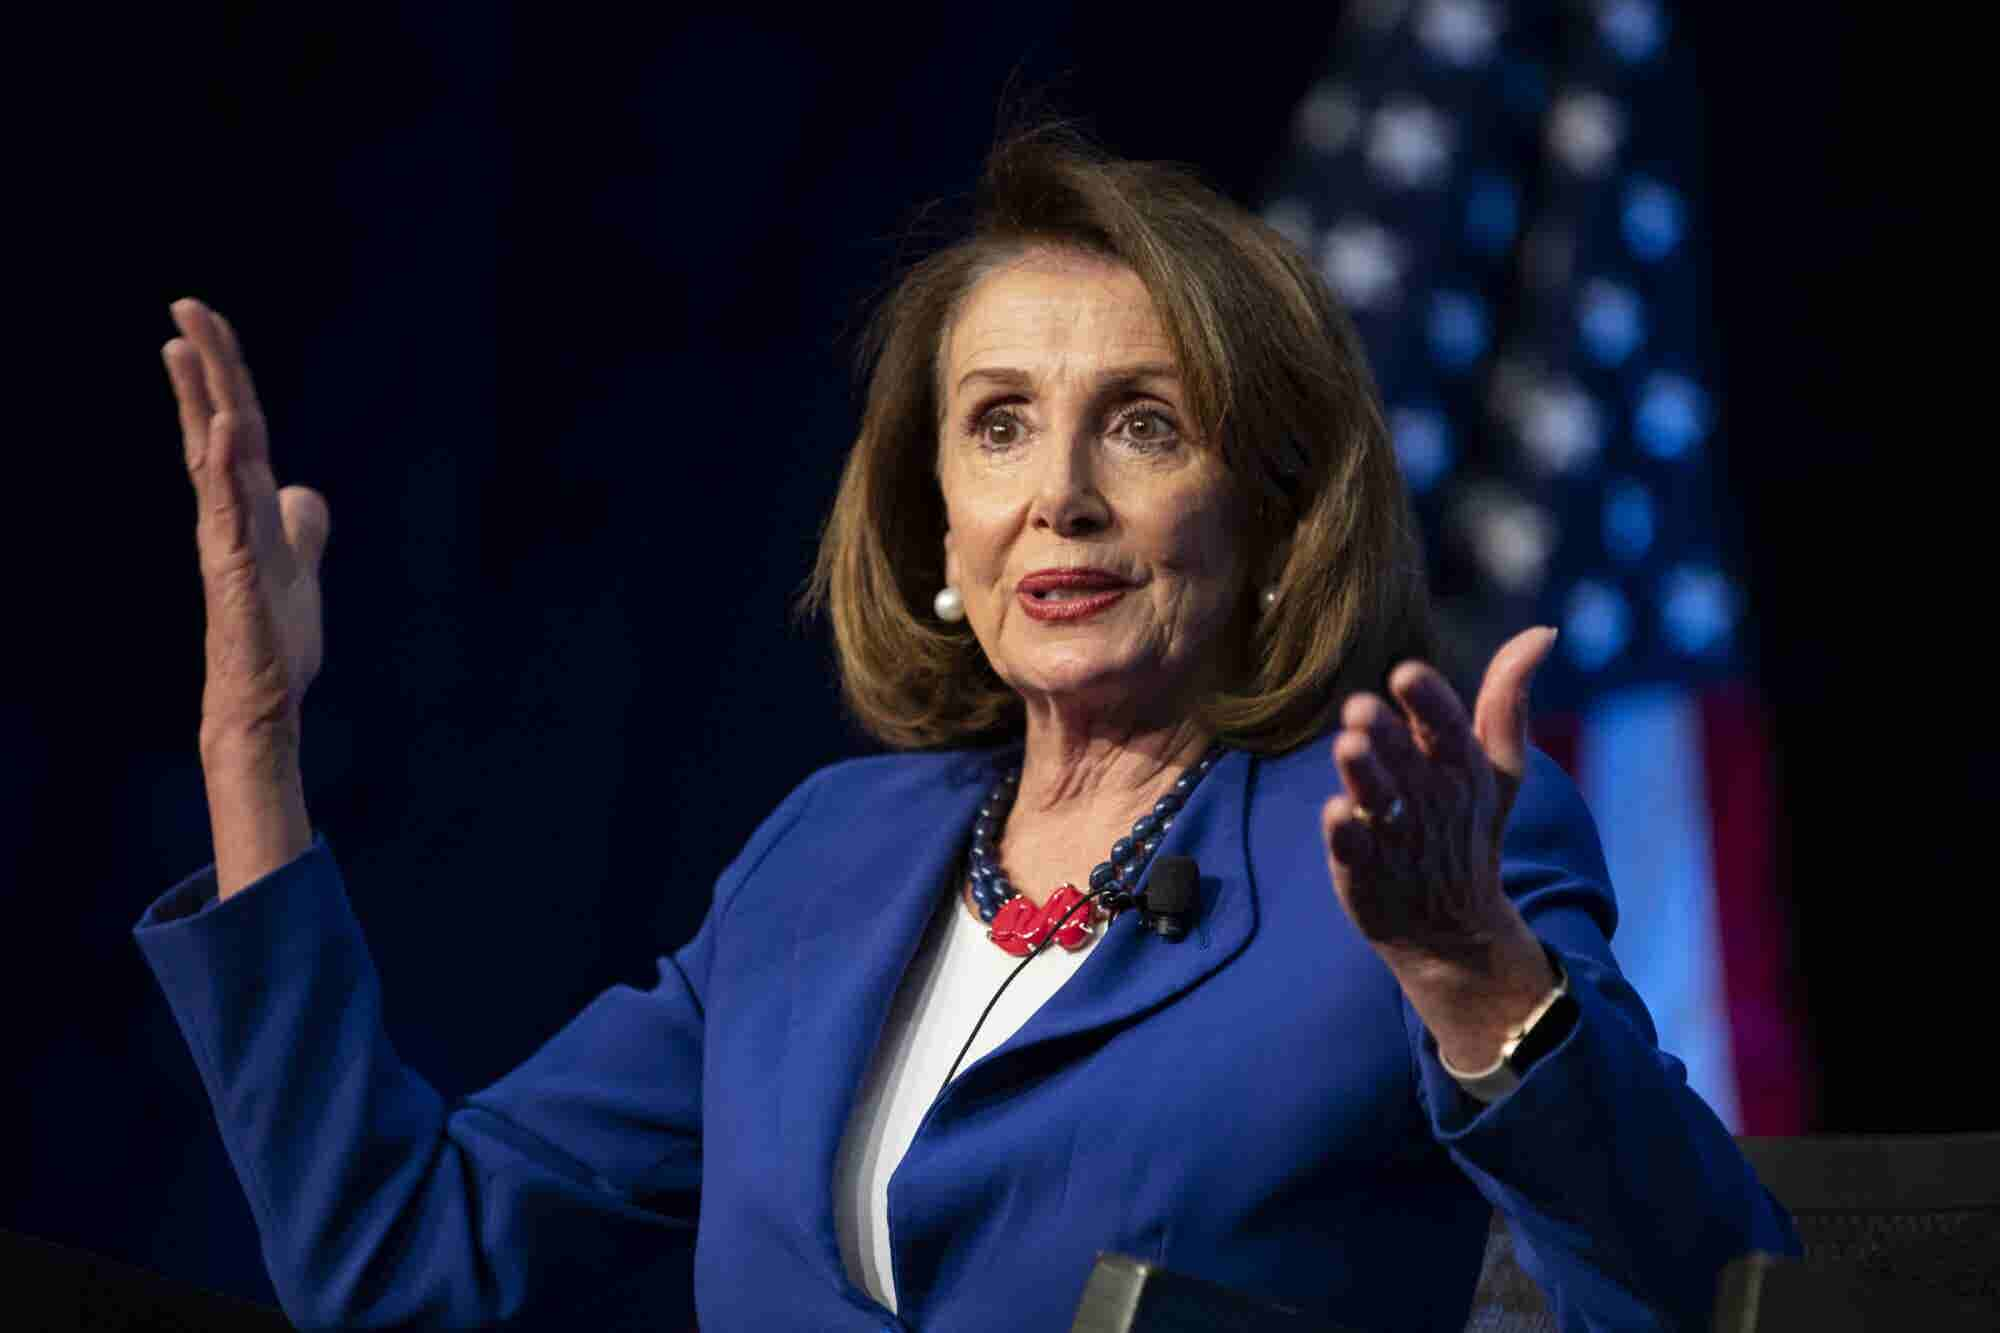 Nancy Pelosi Just Gave Joe Biden (and Every Man) Very Good Advice About Greeting Female Colleagues